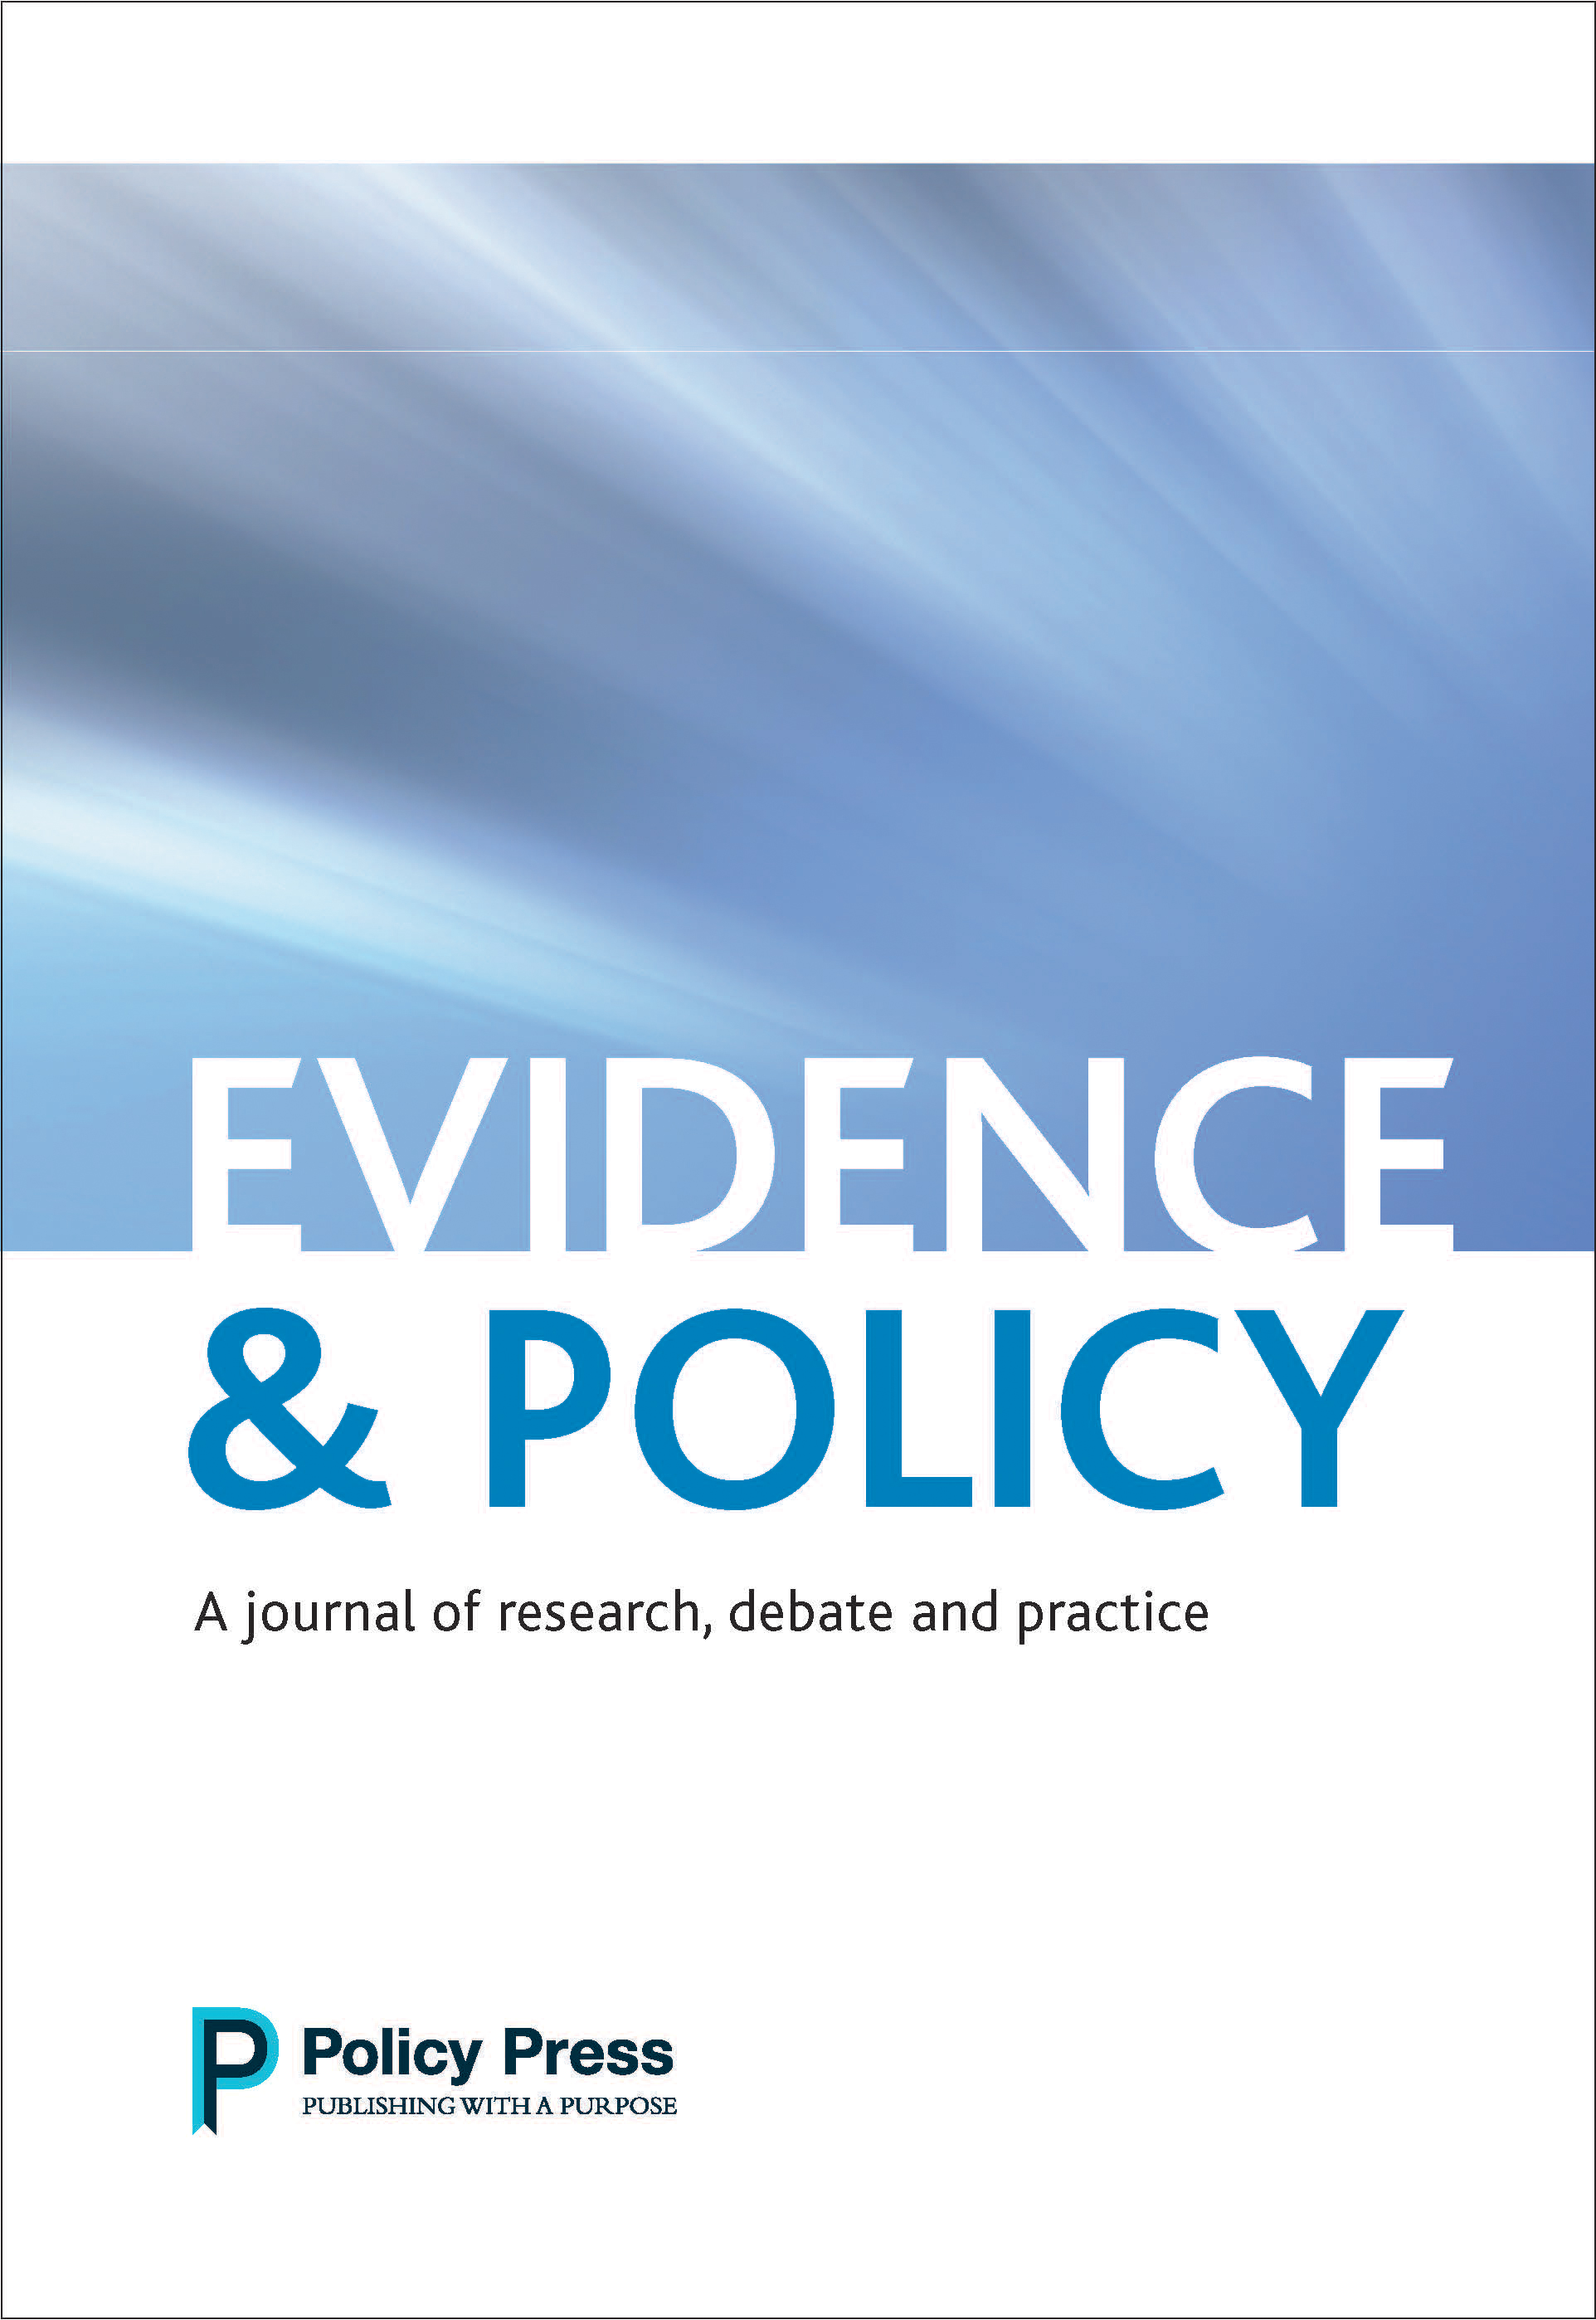 Evidence & Policy: Winner of the 2017 Carol Weiss Prize announced